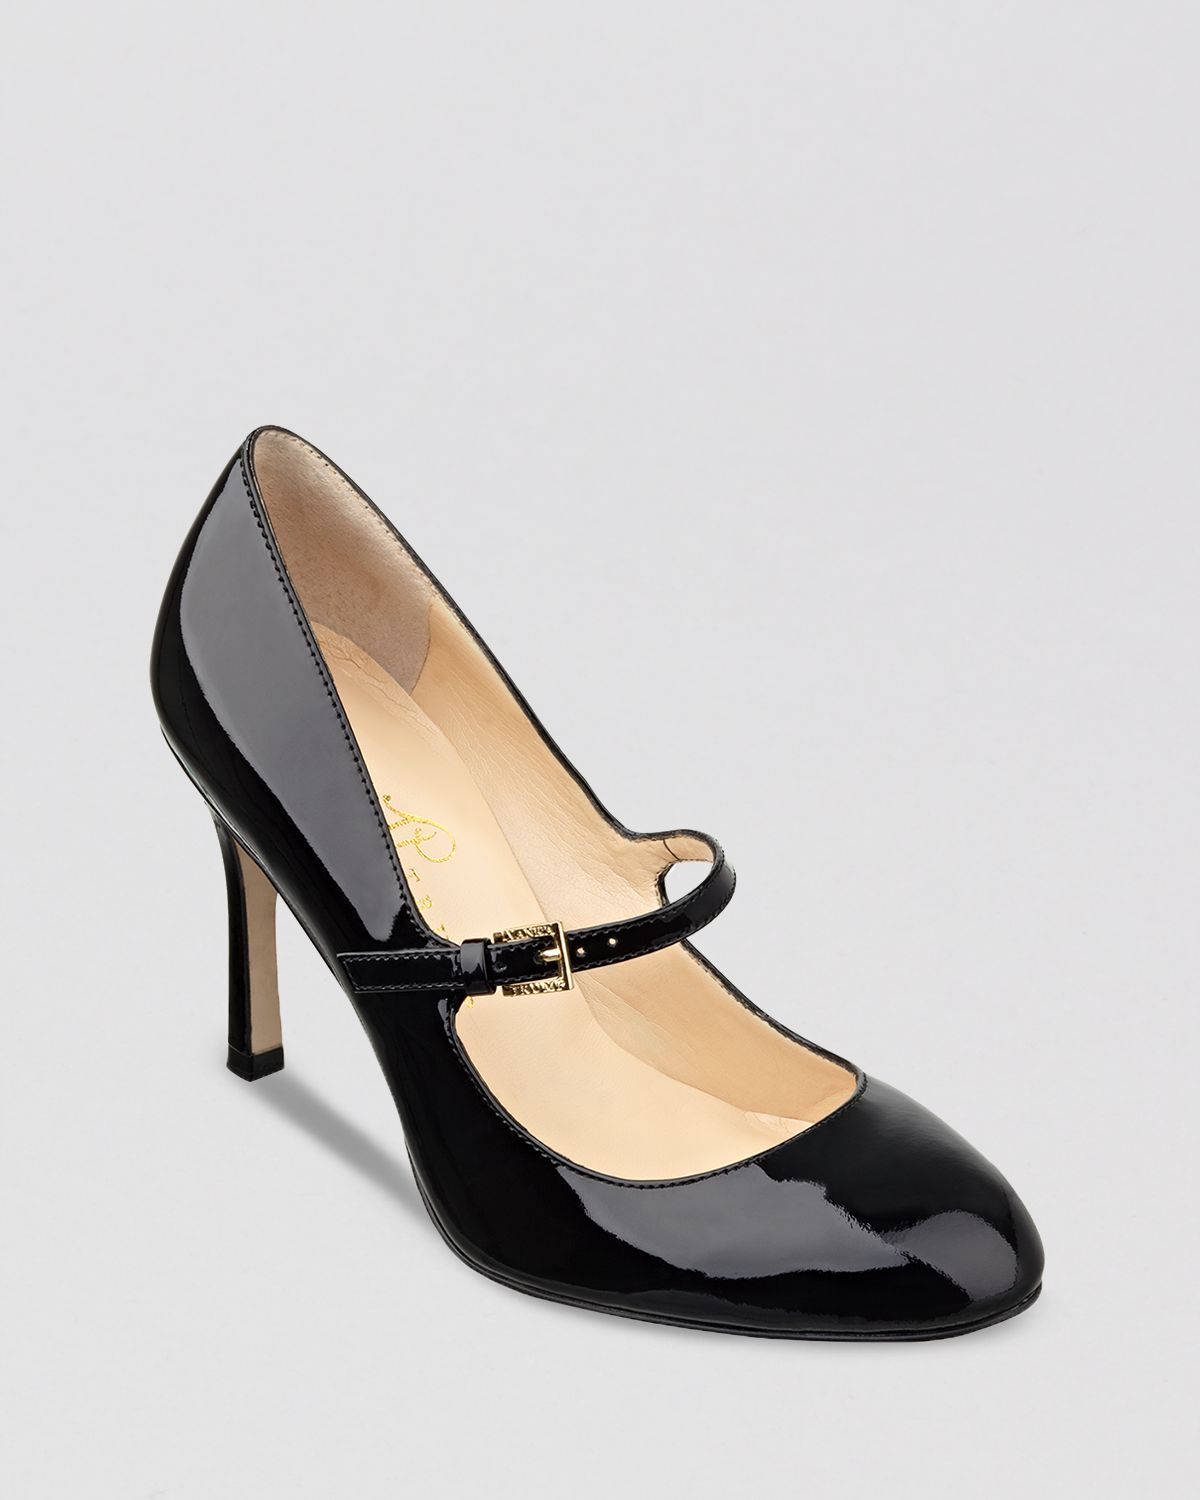 Ivanka trump Pumps Janna Mary Jane High Heel in Black | Lyst